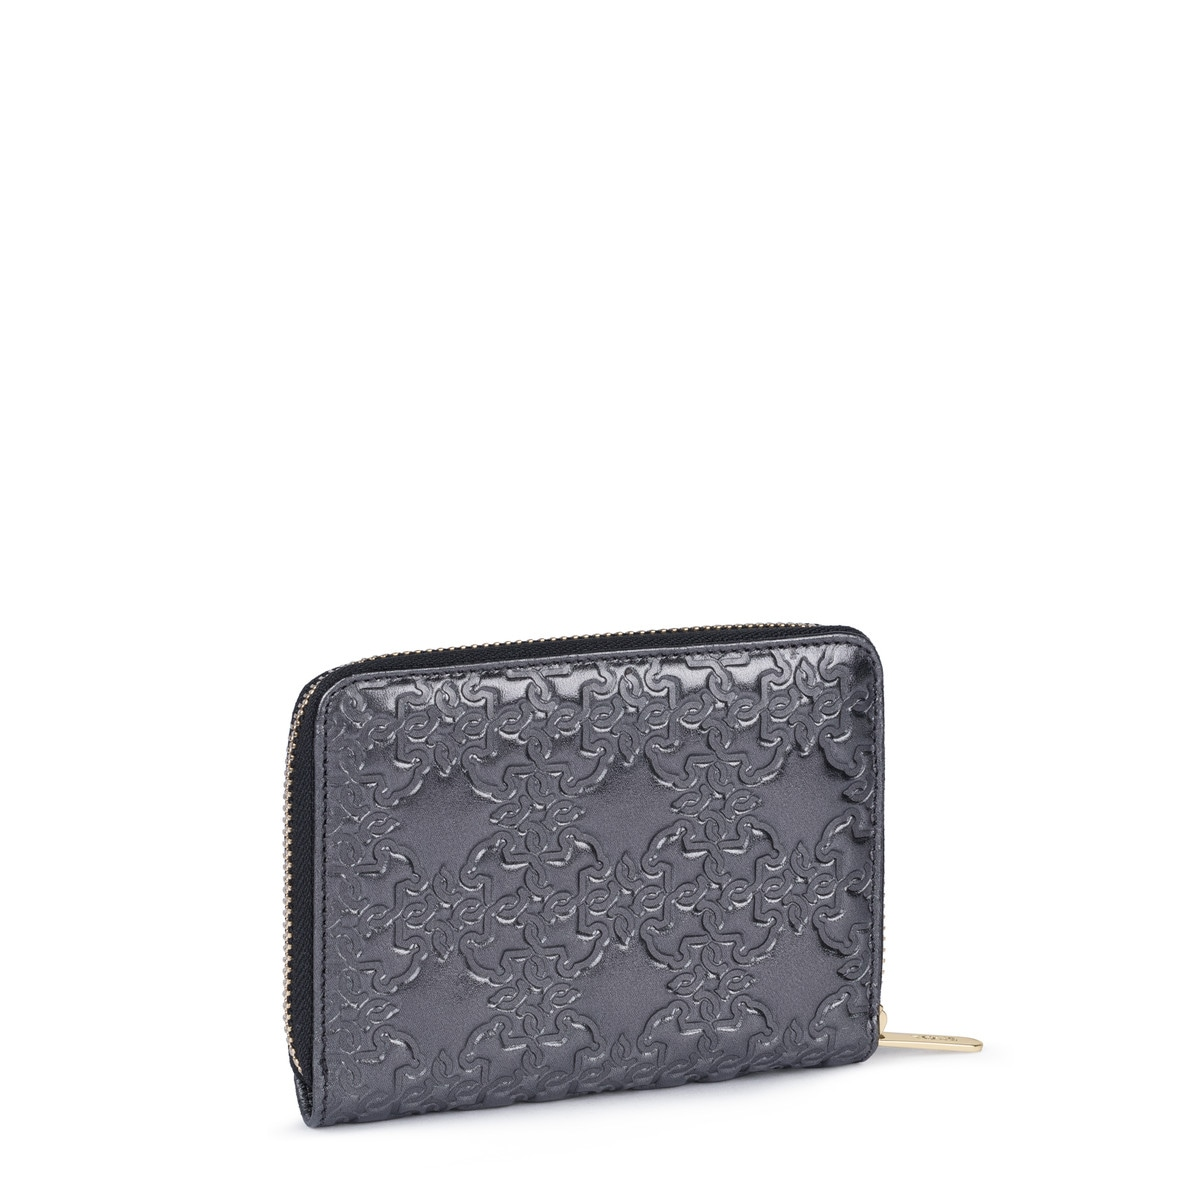 Small silver Mossaic Leather Wallet with zipper